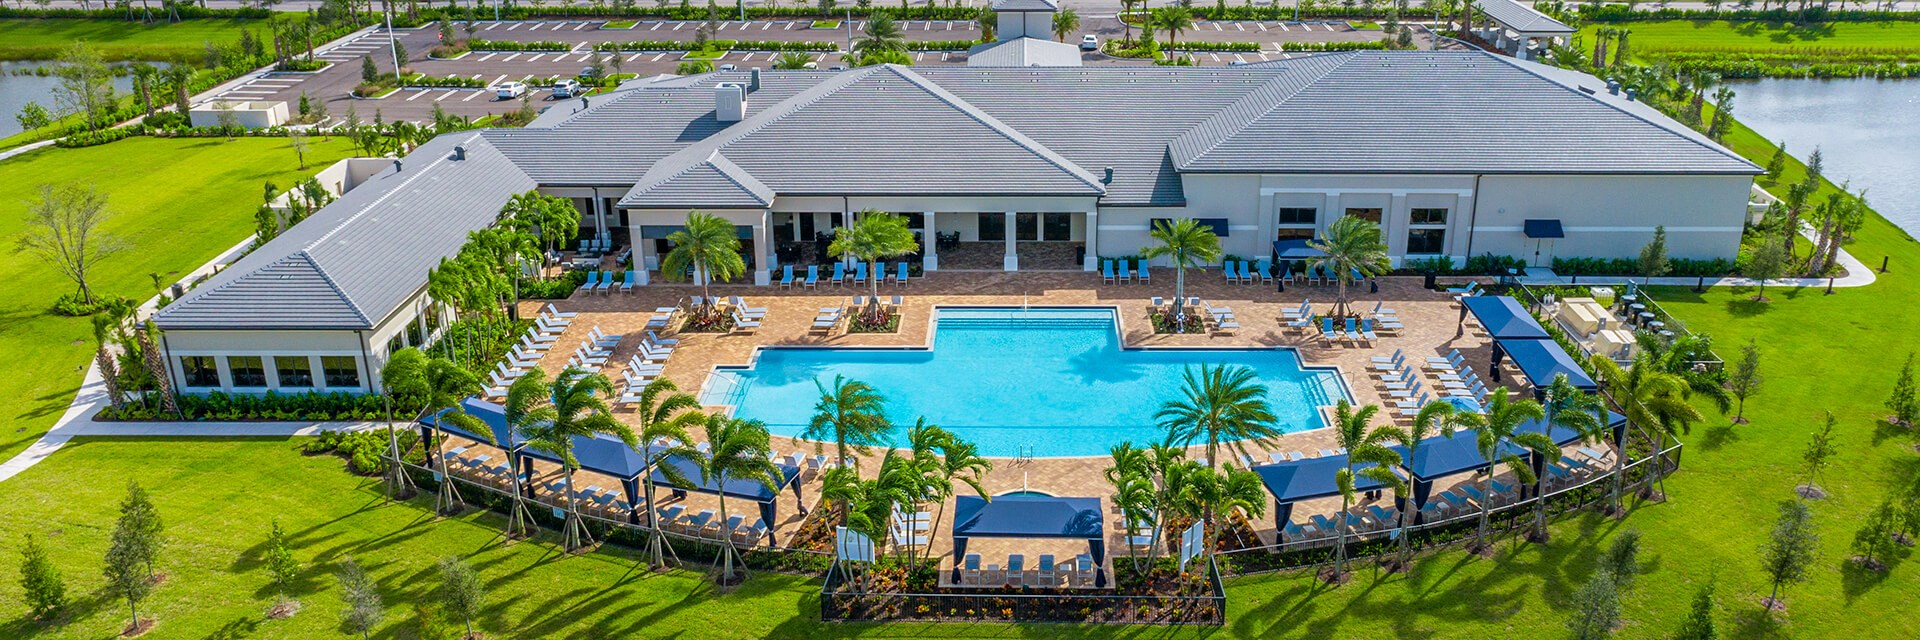 34,000-SQUARE FOOT CLUBHOUSE